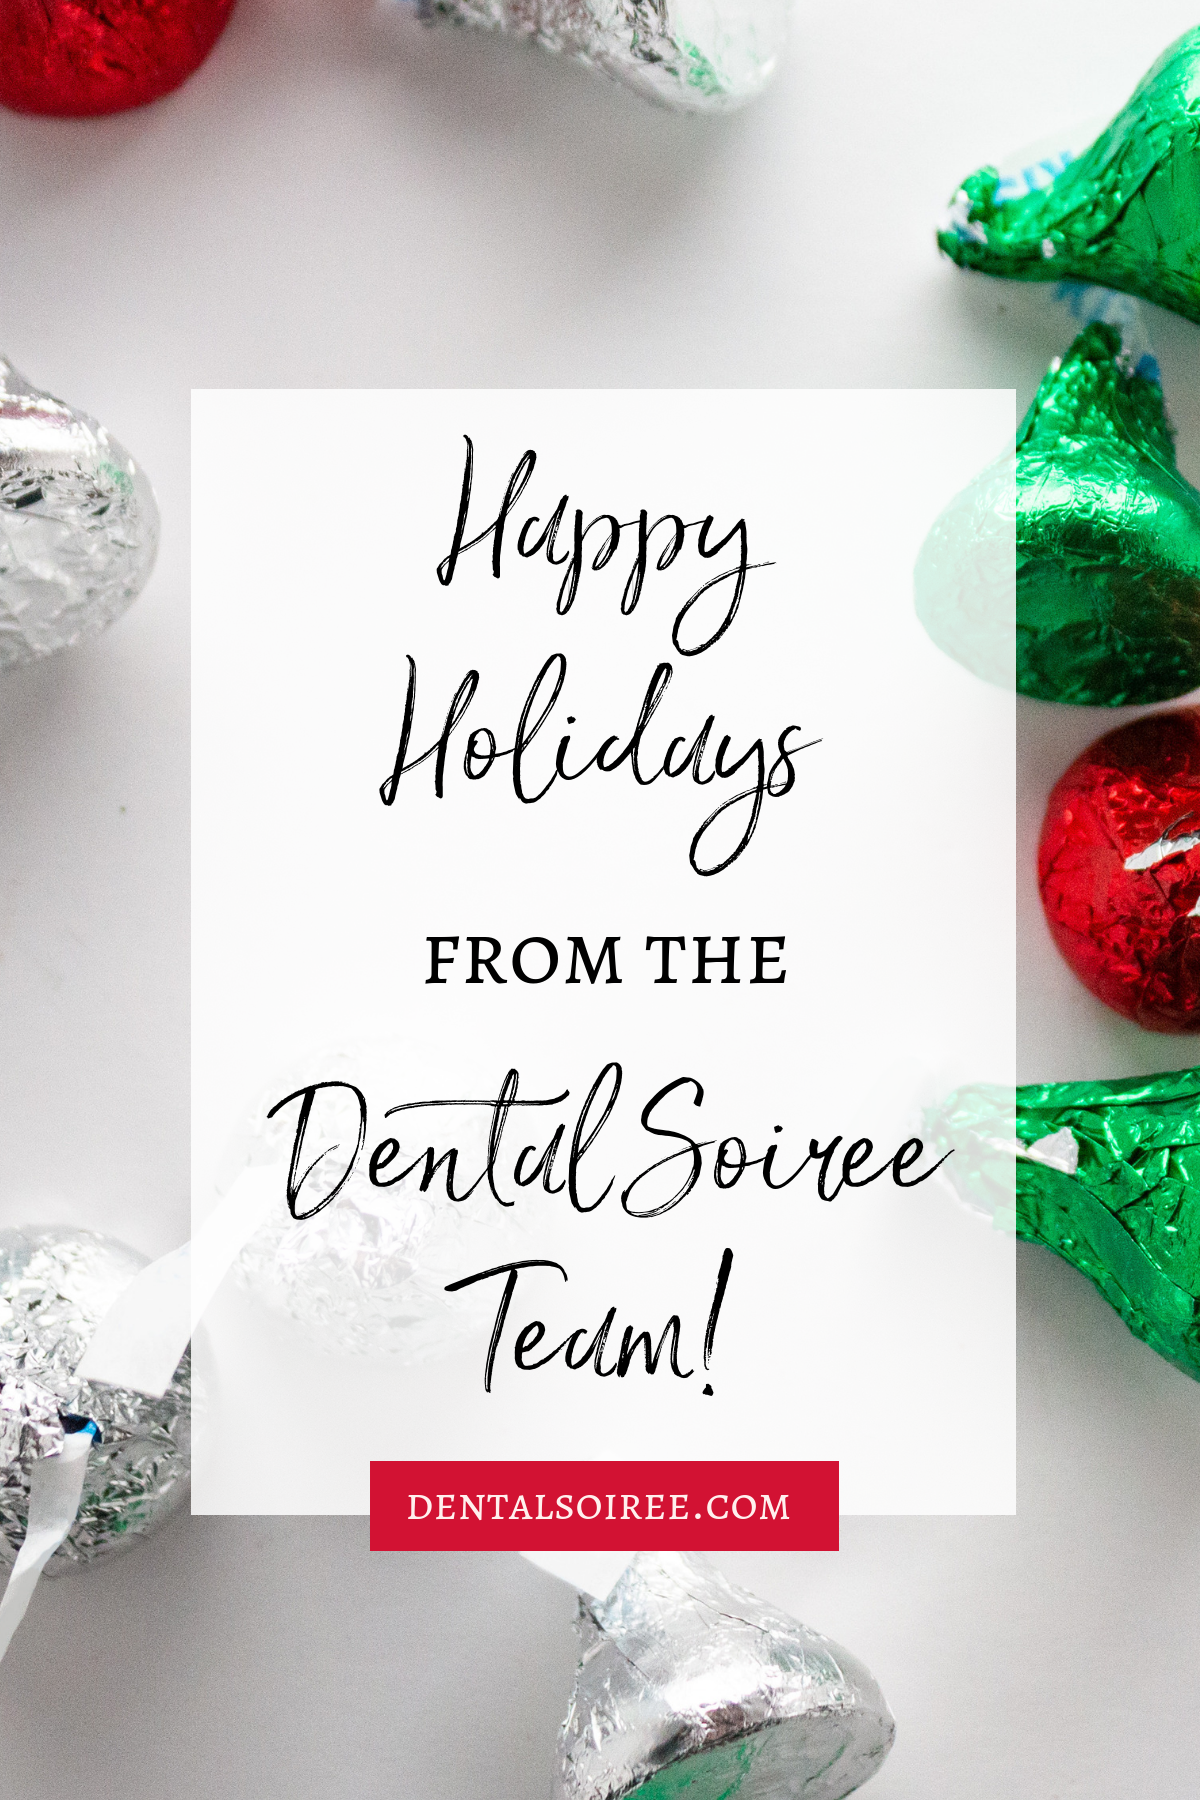 Happy Holidays from the Dental Soiree Team!